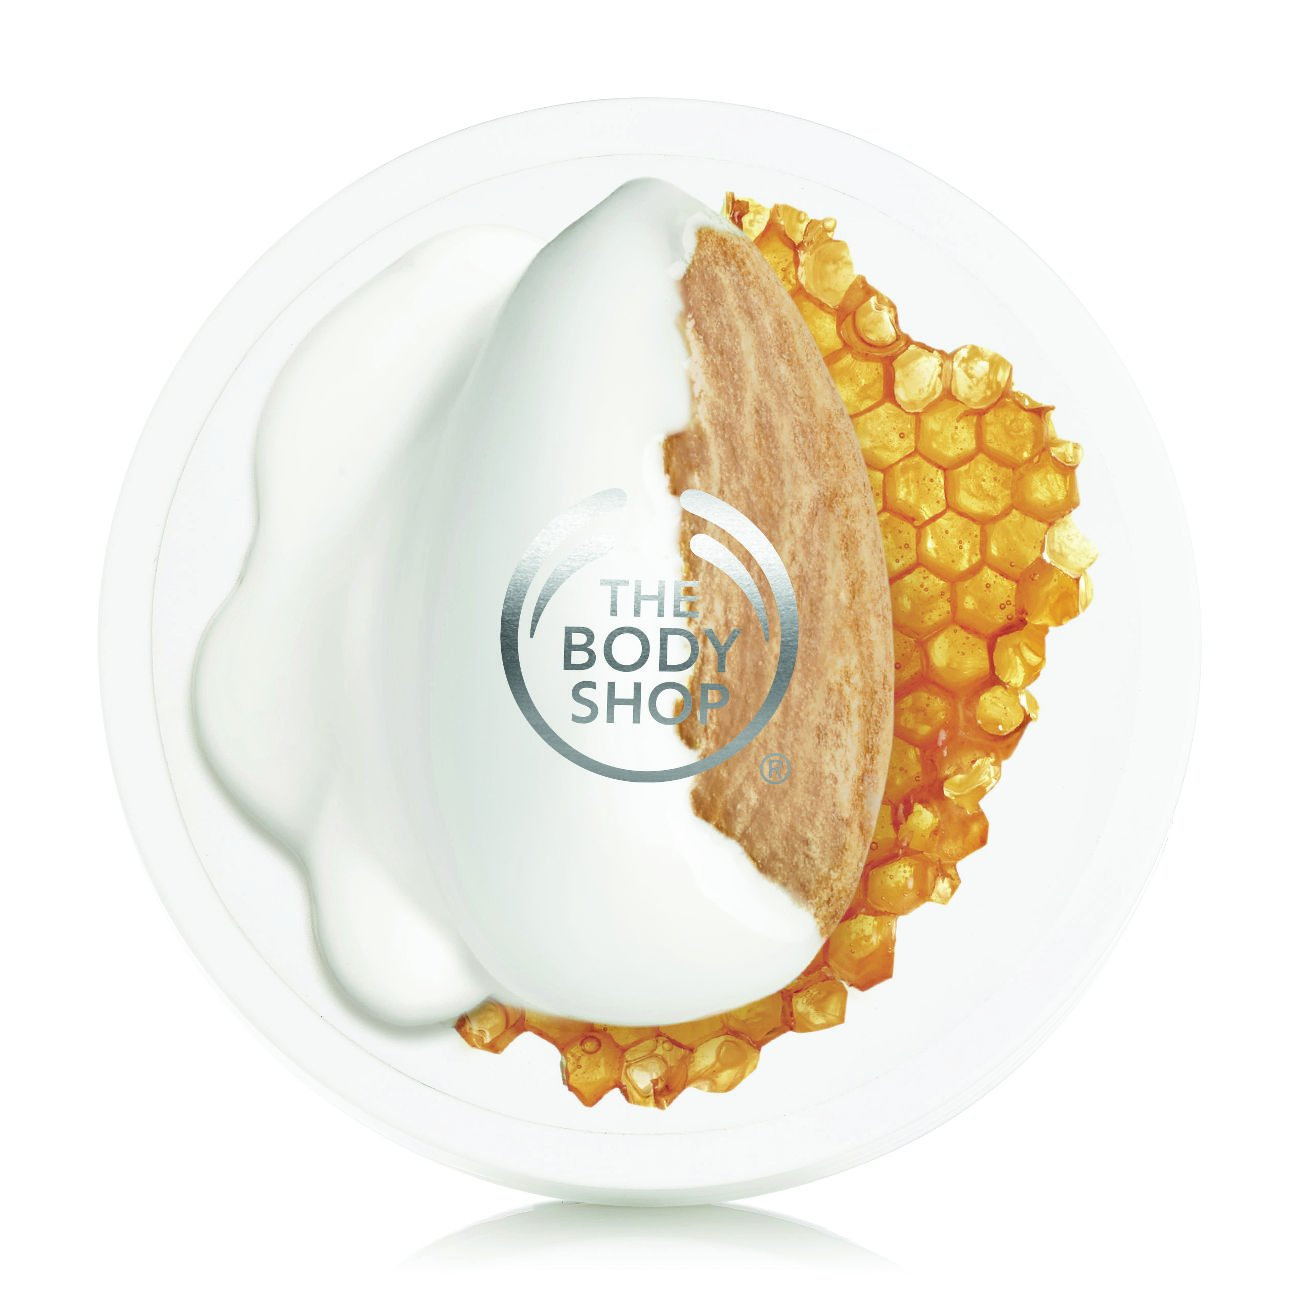 The Body Shop Almond Milk & Honey Calming & Protecting Body Butter, 6.9 Oz